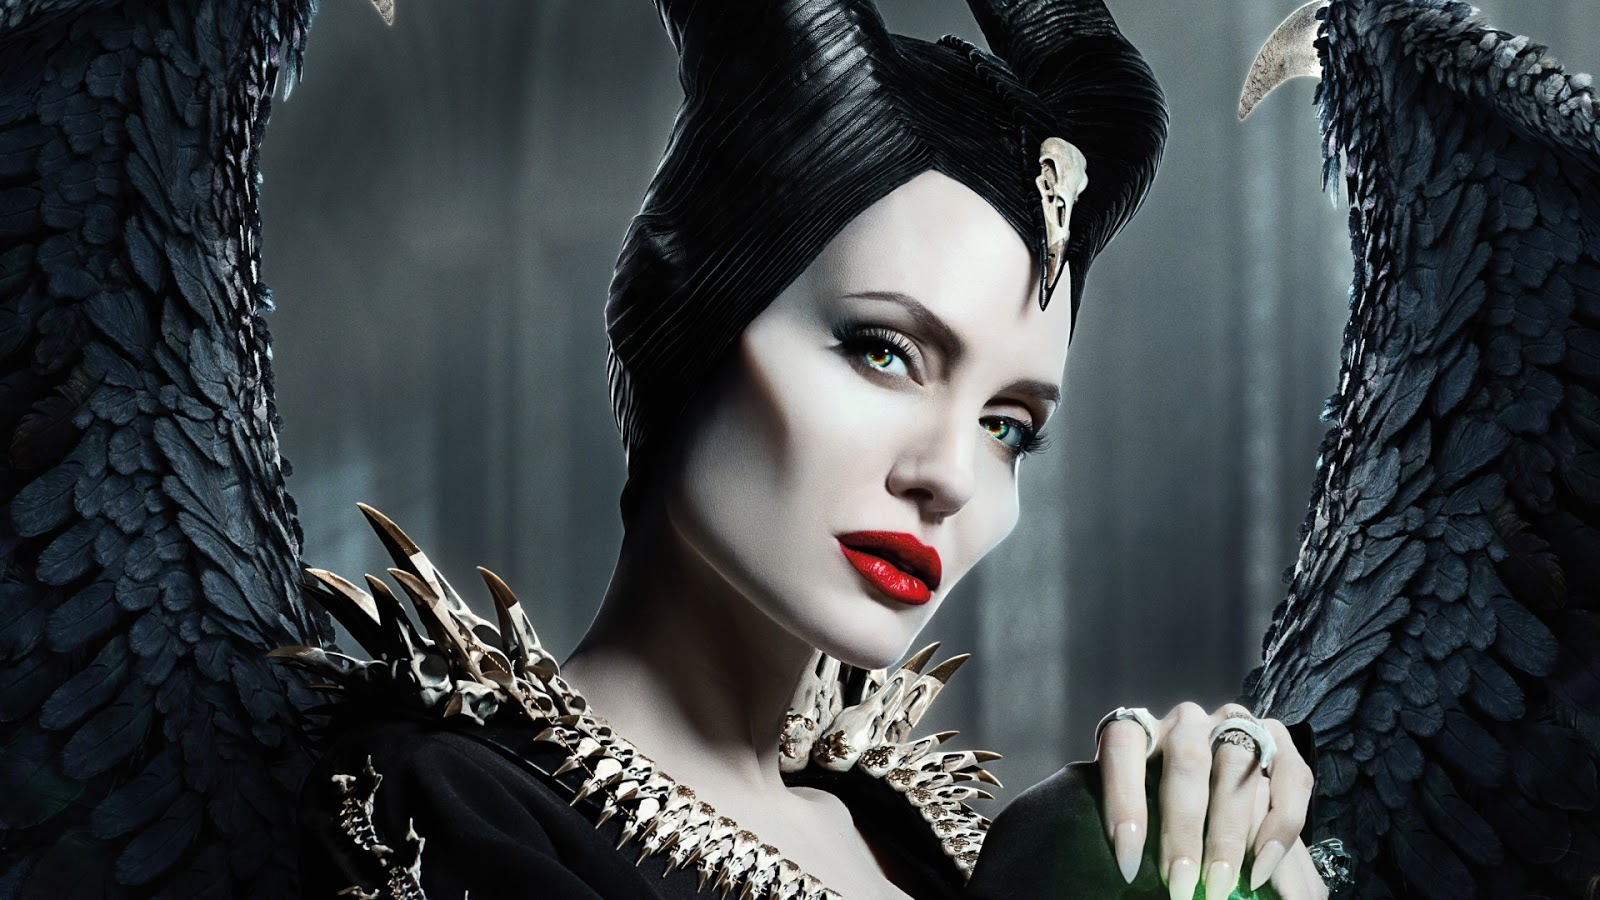 Maleficent Mistress Of Evil 2019 Movie Wallpaper Wallpapers Overflow